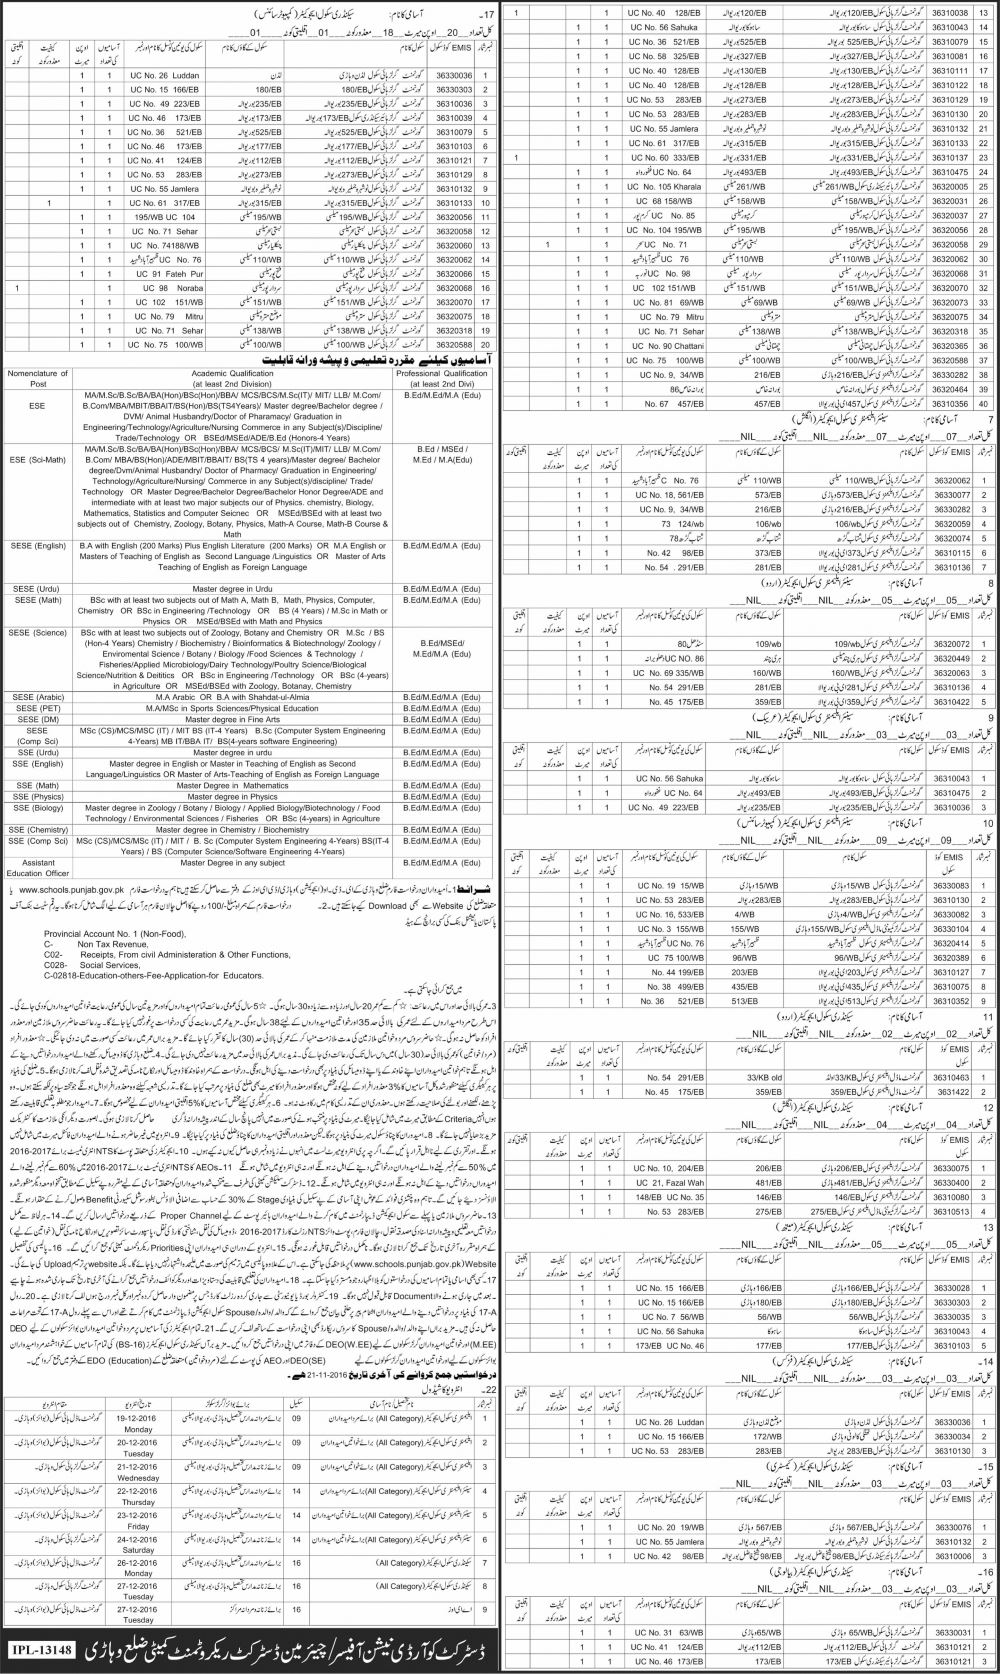 vehari-educator-seats-school-wise-8